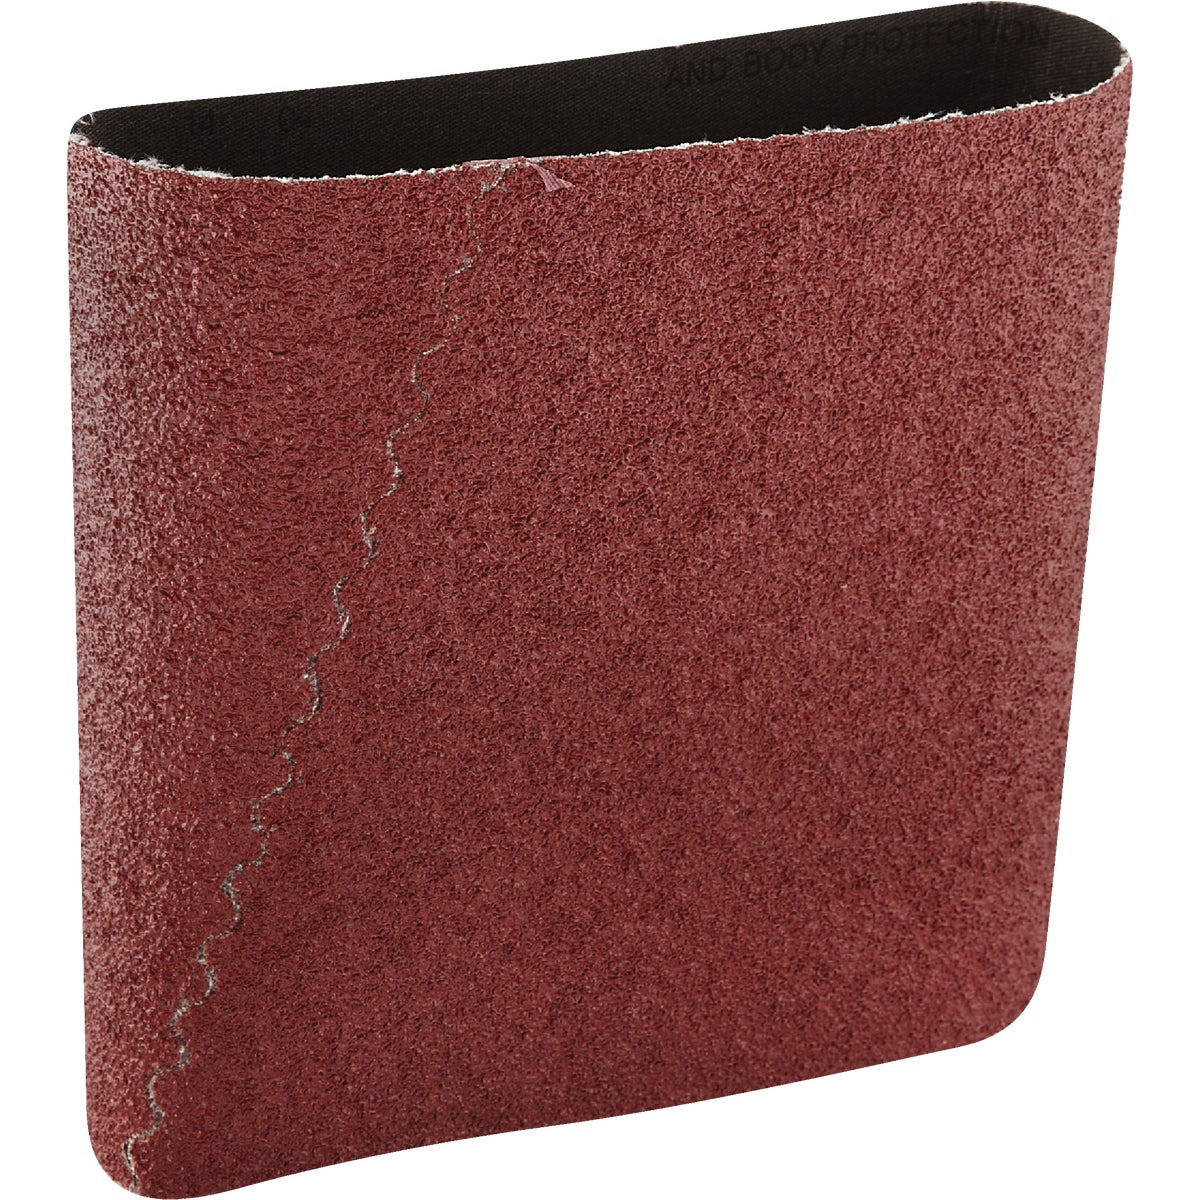 24G FLOOR SANDING BELT - 018-881924 by Virginia Abrasives